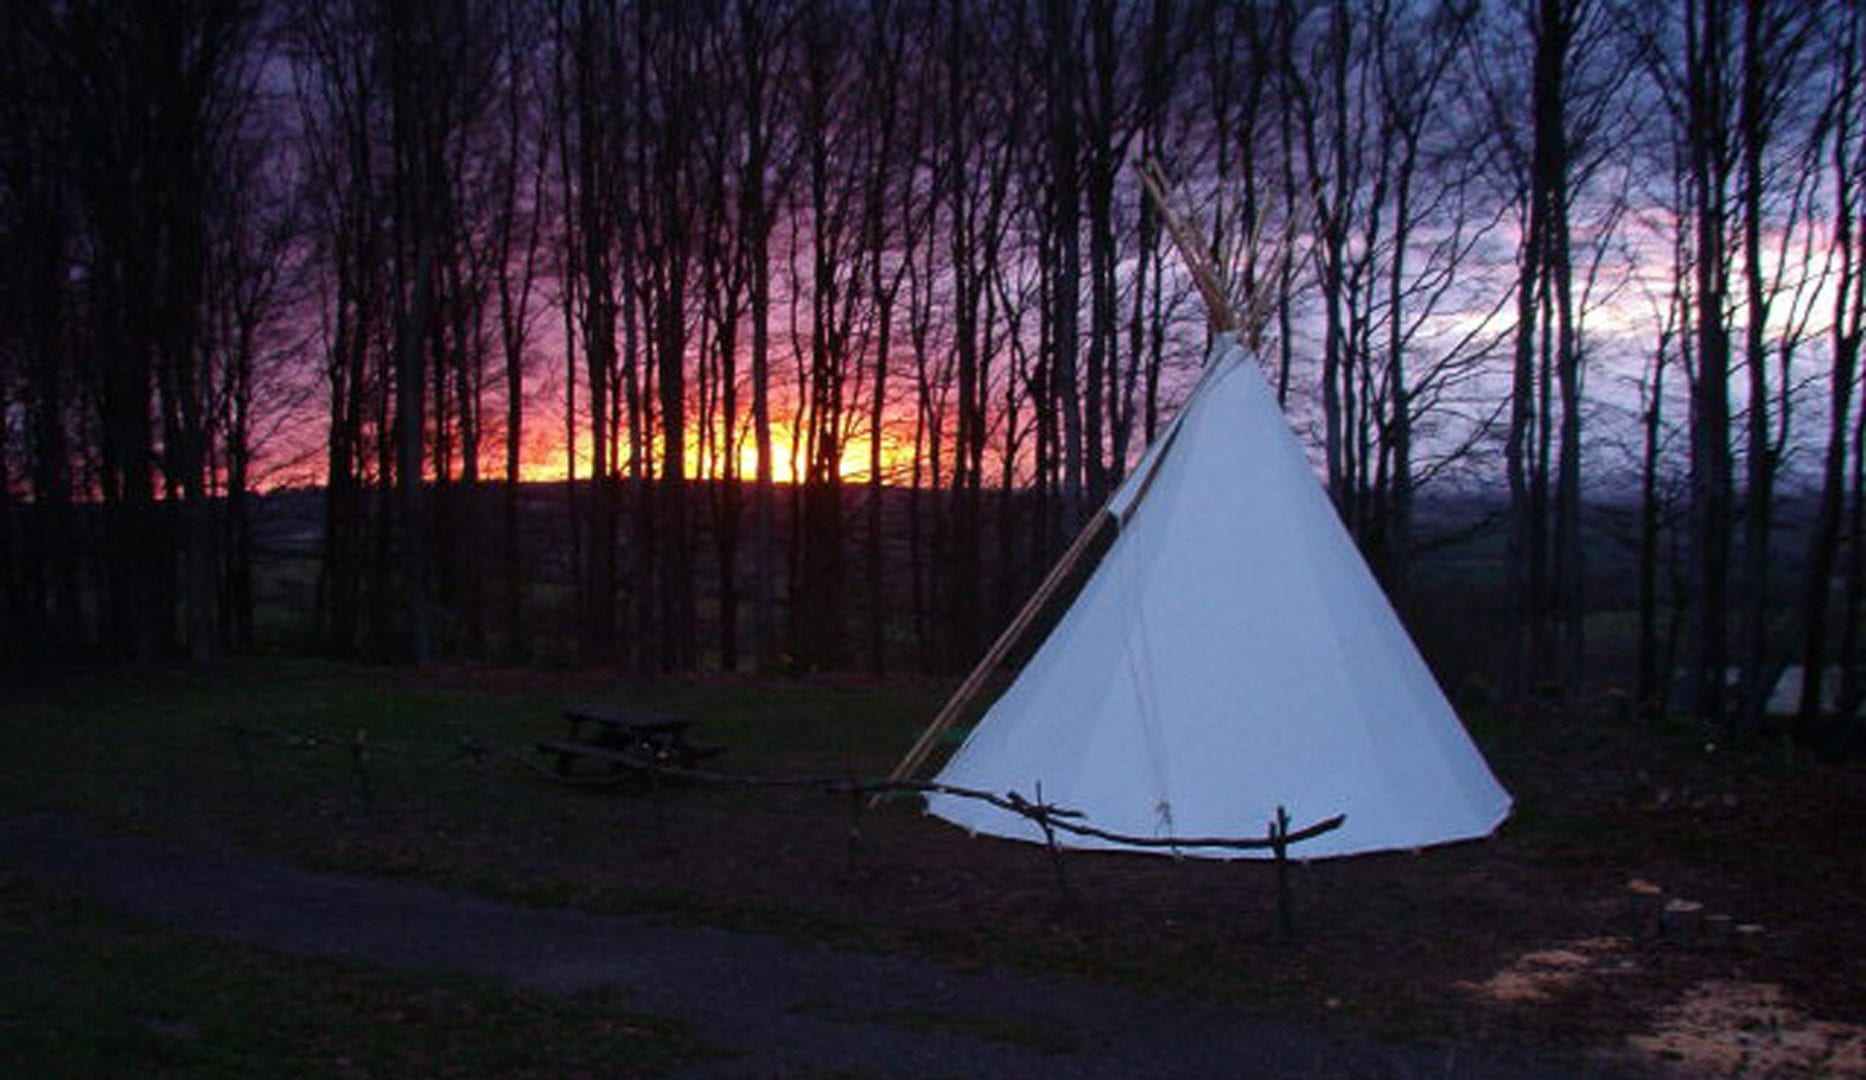 Tipi atat the courthill centre in oxfordshire on the ridegway